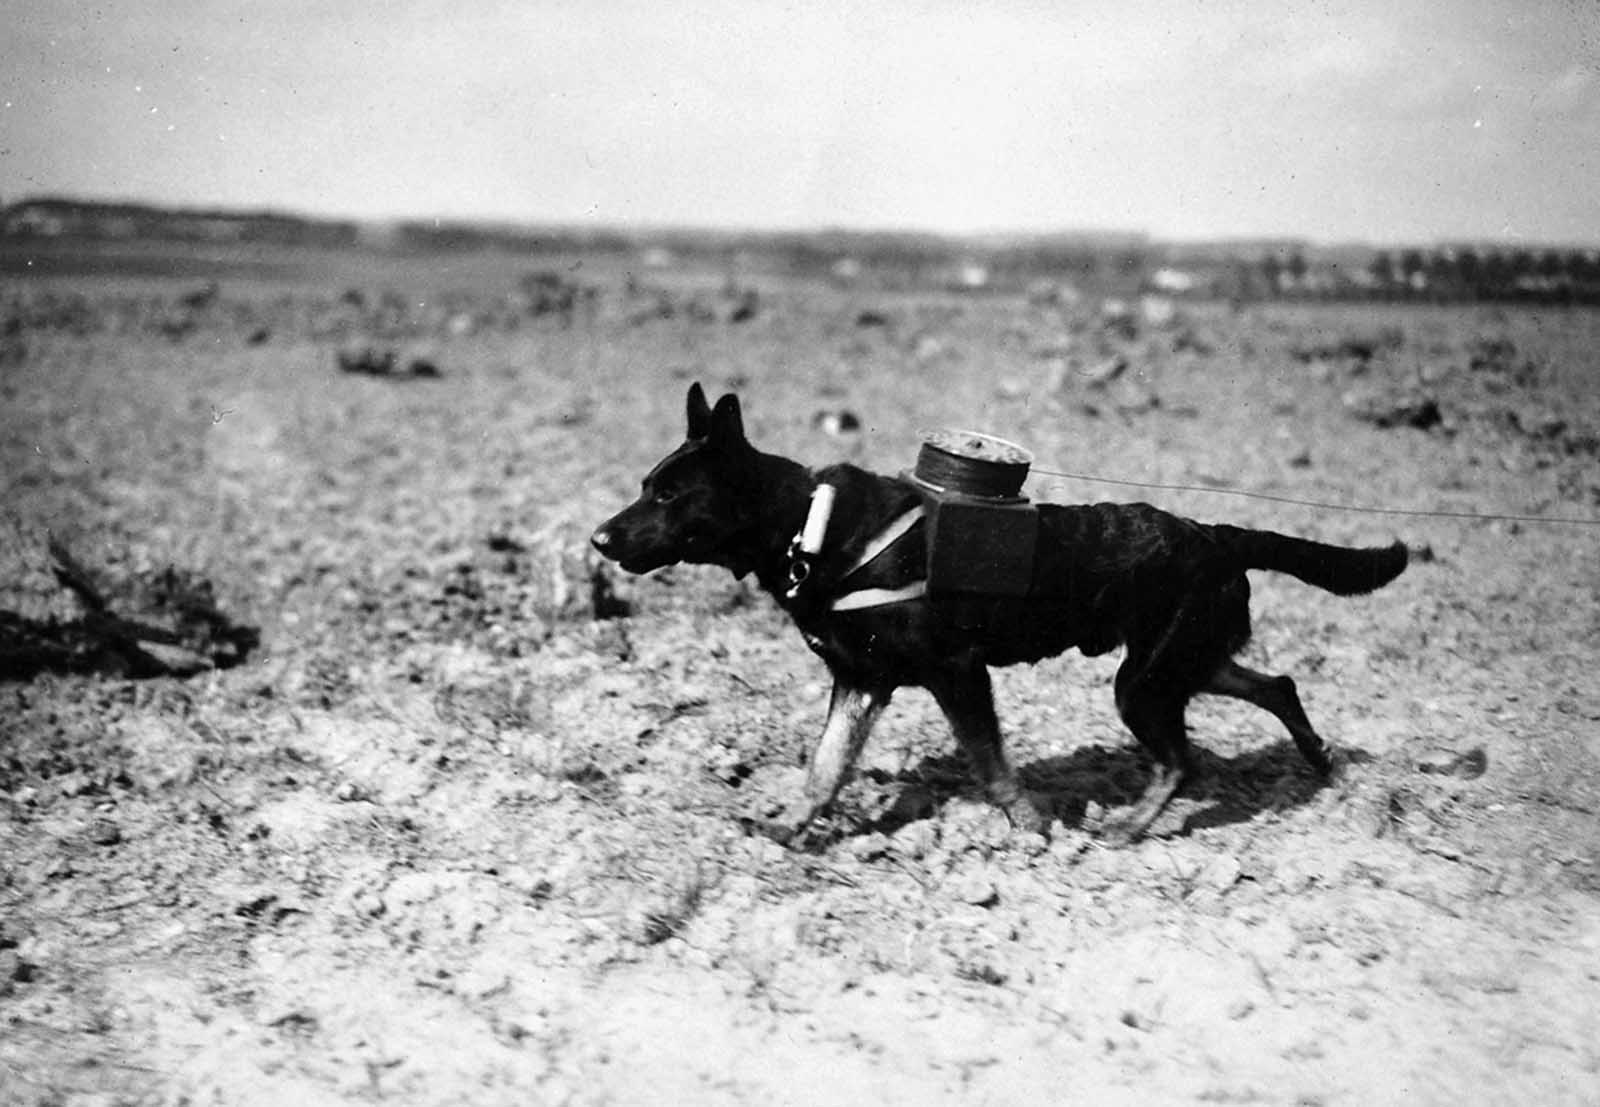 A messenger dog with a spool attached to a harness for laying out new electric line in September of 1917.